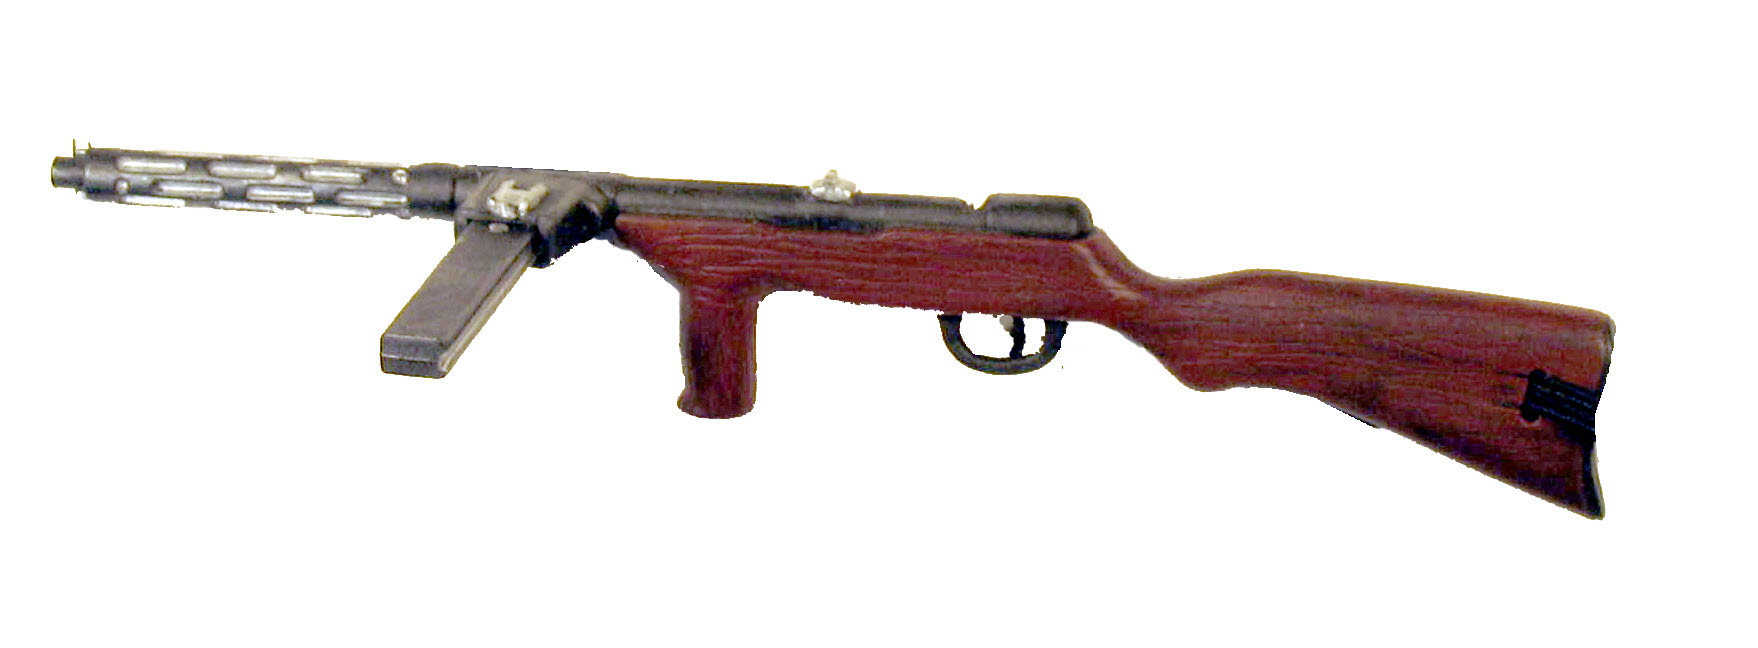 German ERMA sub machine gun - Click Image to Close